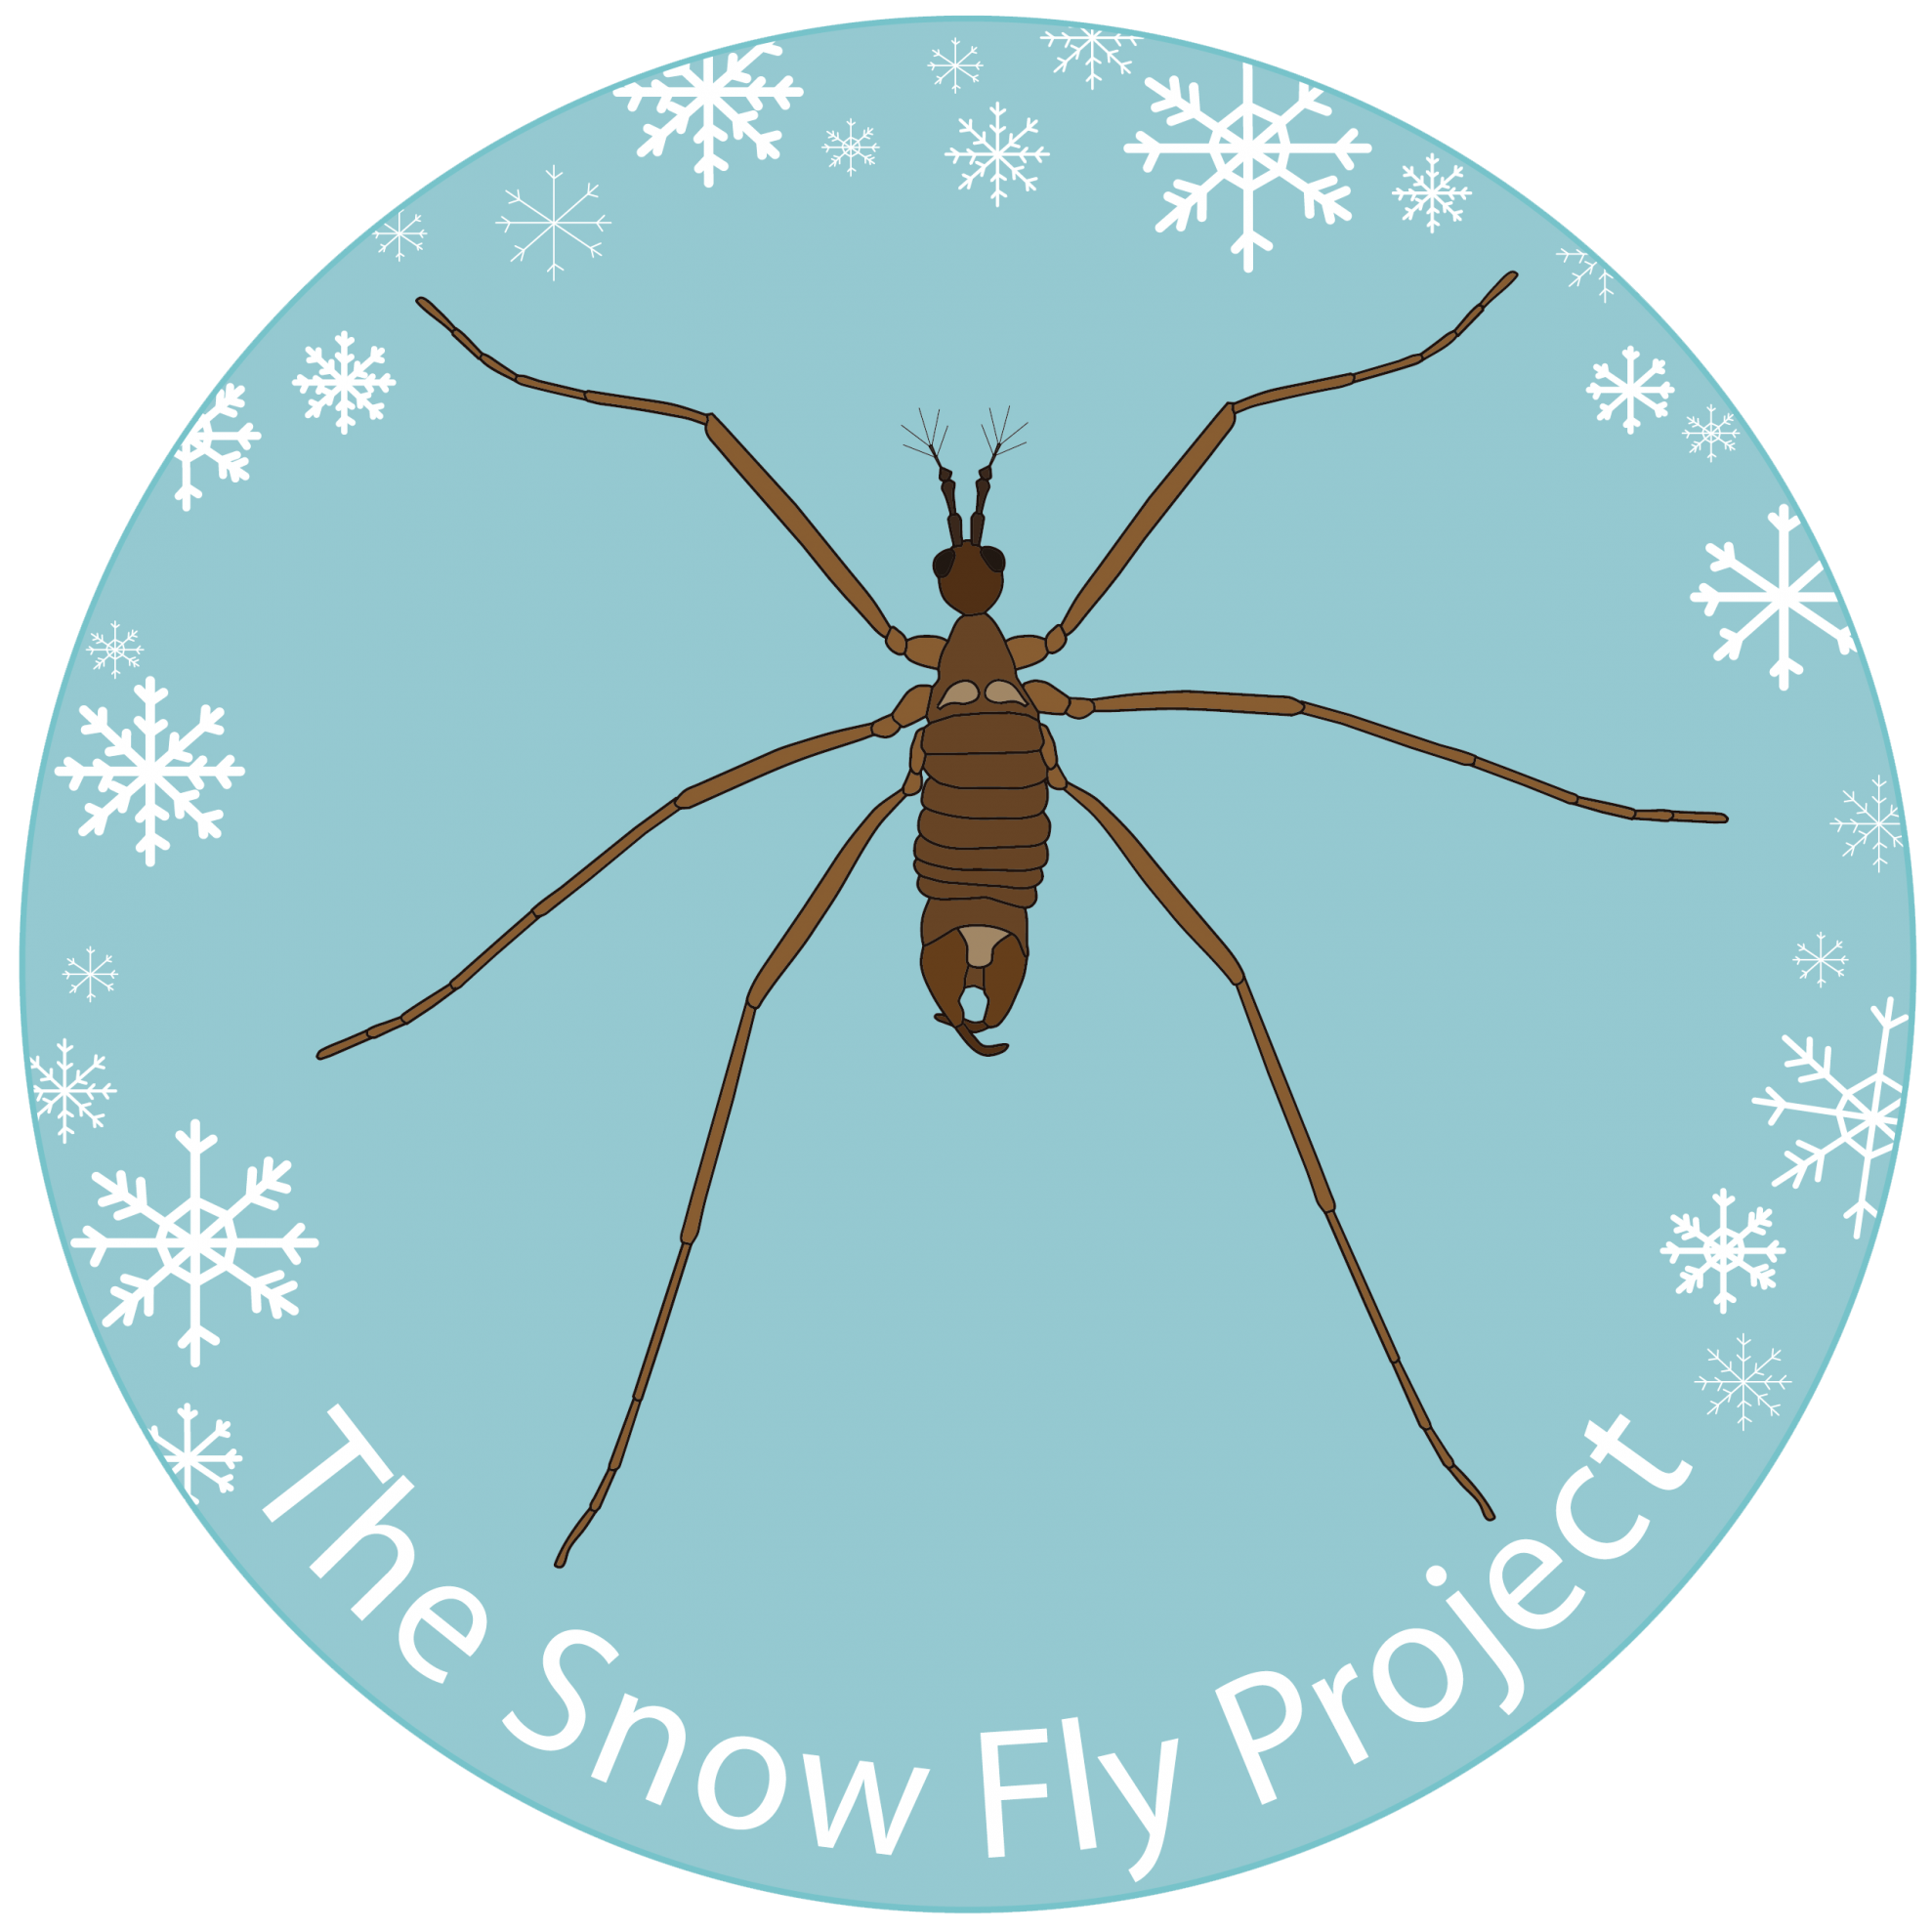 The Snow Fly Project